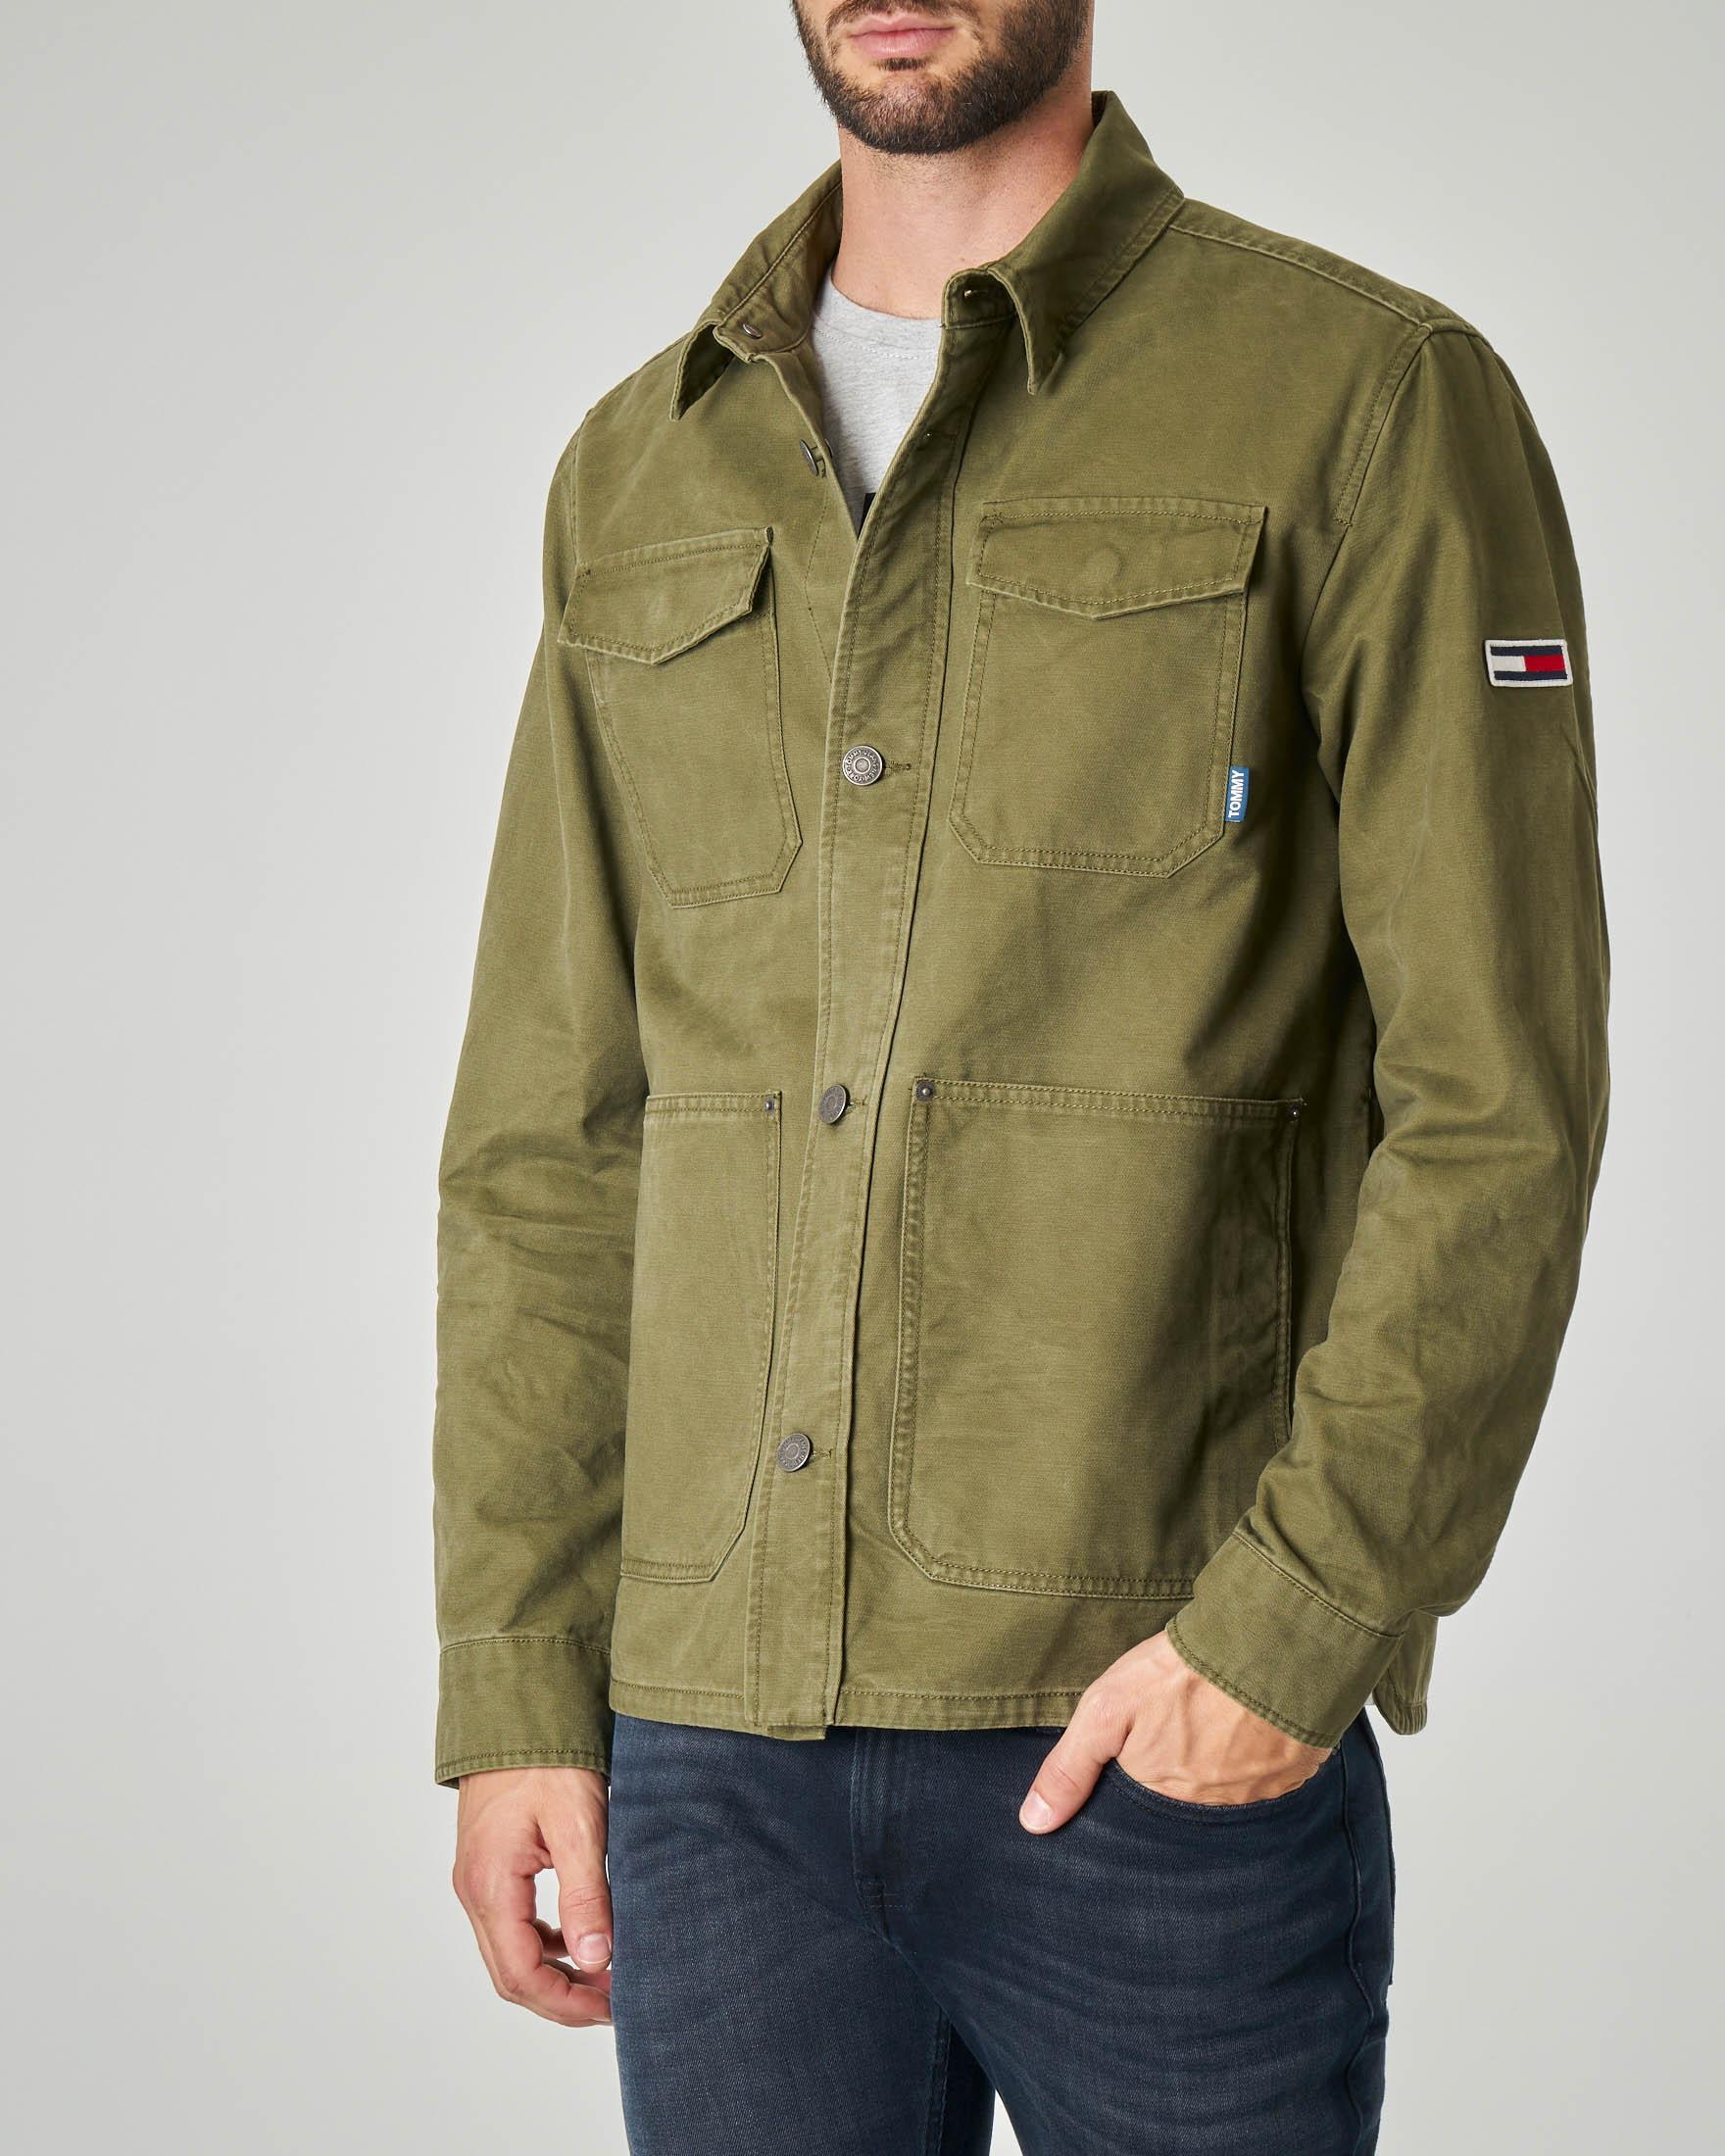 Field jacket verde militare in cotone